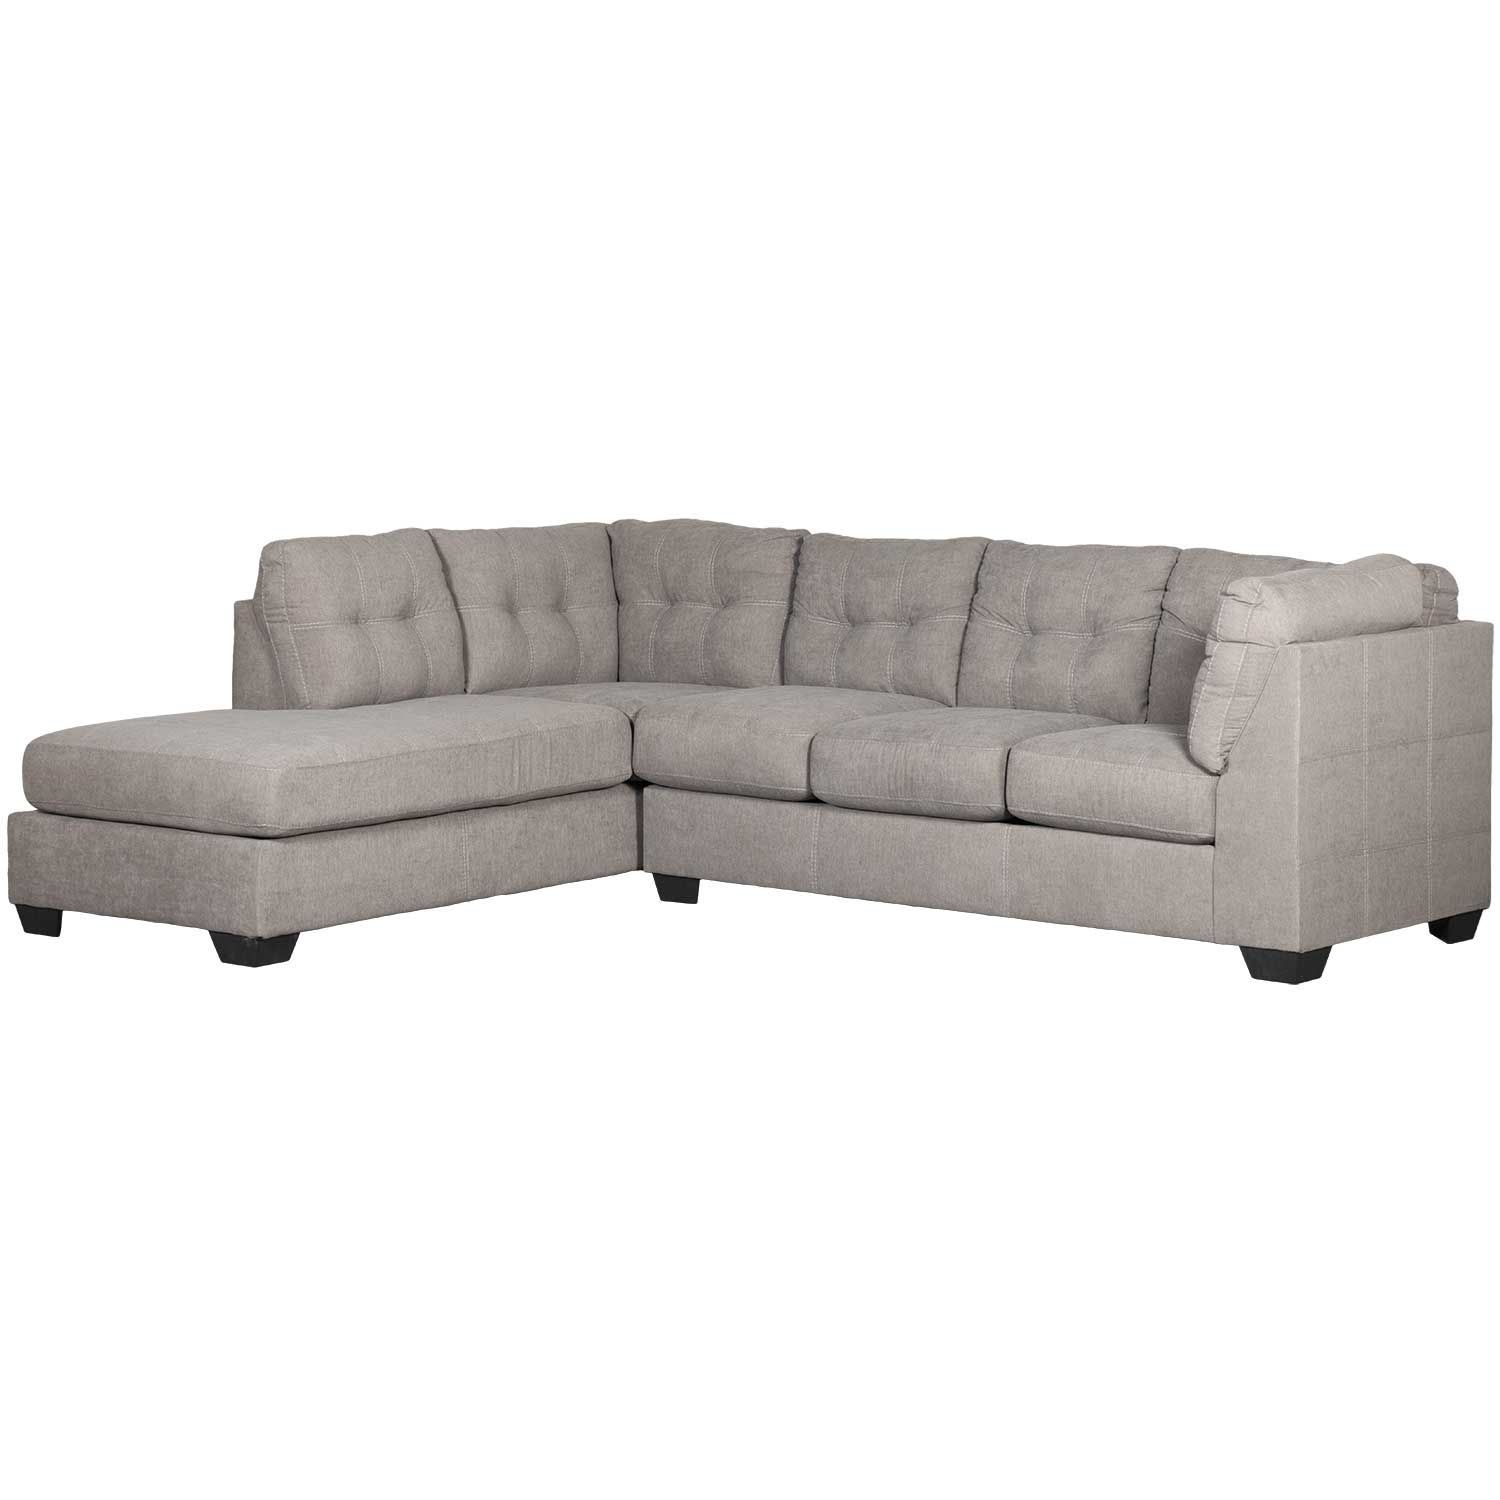 Maier Charcoal 2 Piece Sectional With Laf Chaise | 4520016/67 intended for Arrowmask 2 Piece Sectionals With Laf Chaise (Image 17 of 30)